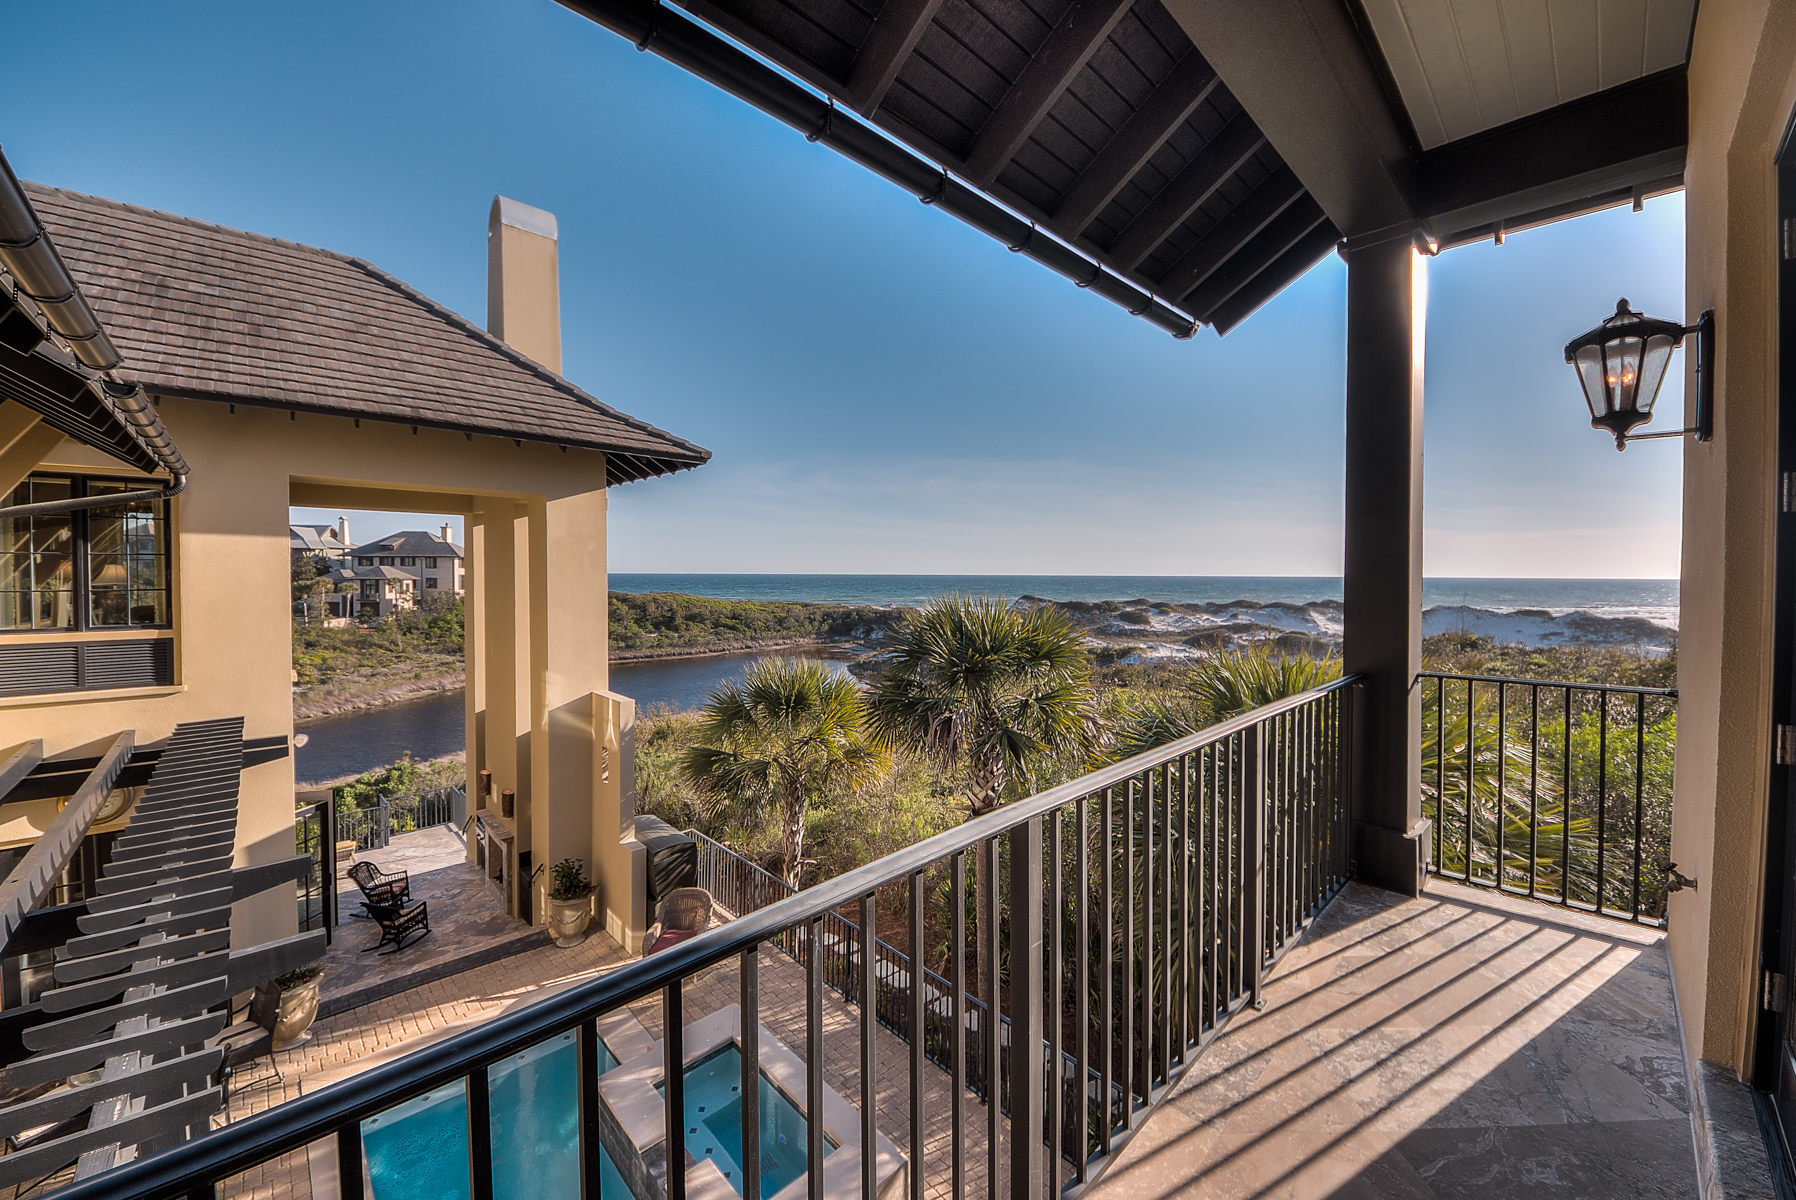 Moradia para Venda às LUXURY HOME WITH SPECTACULAR VIEWS AT THE RETREAT 231 W Bermuda Drive Santa Rosa Beach, Florida, 32459 Estados Unidos